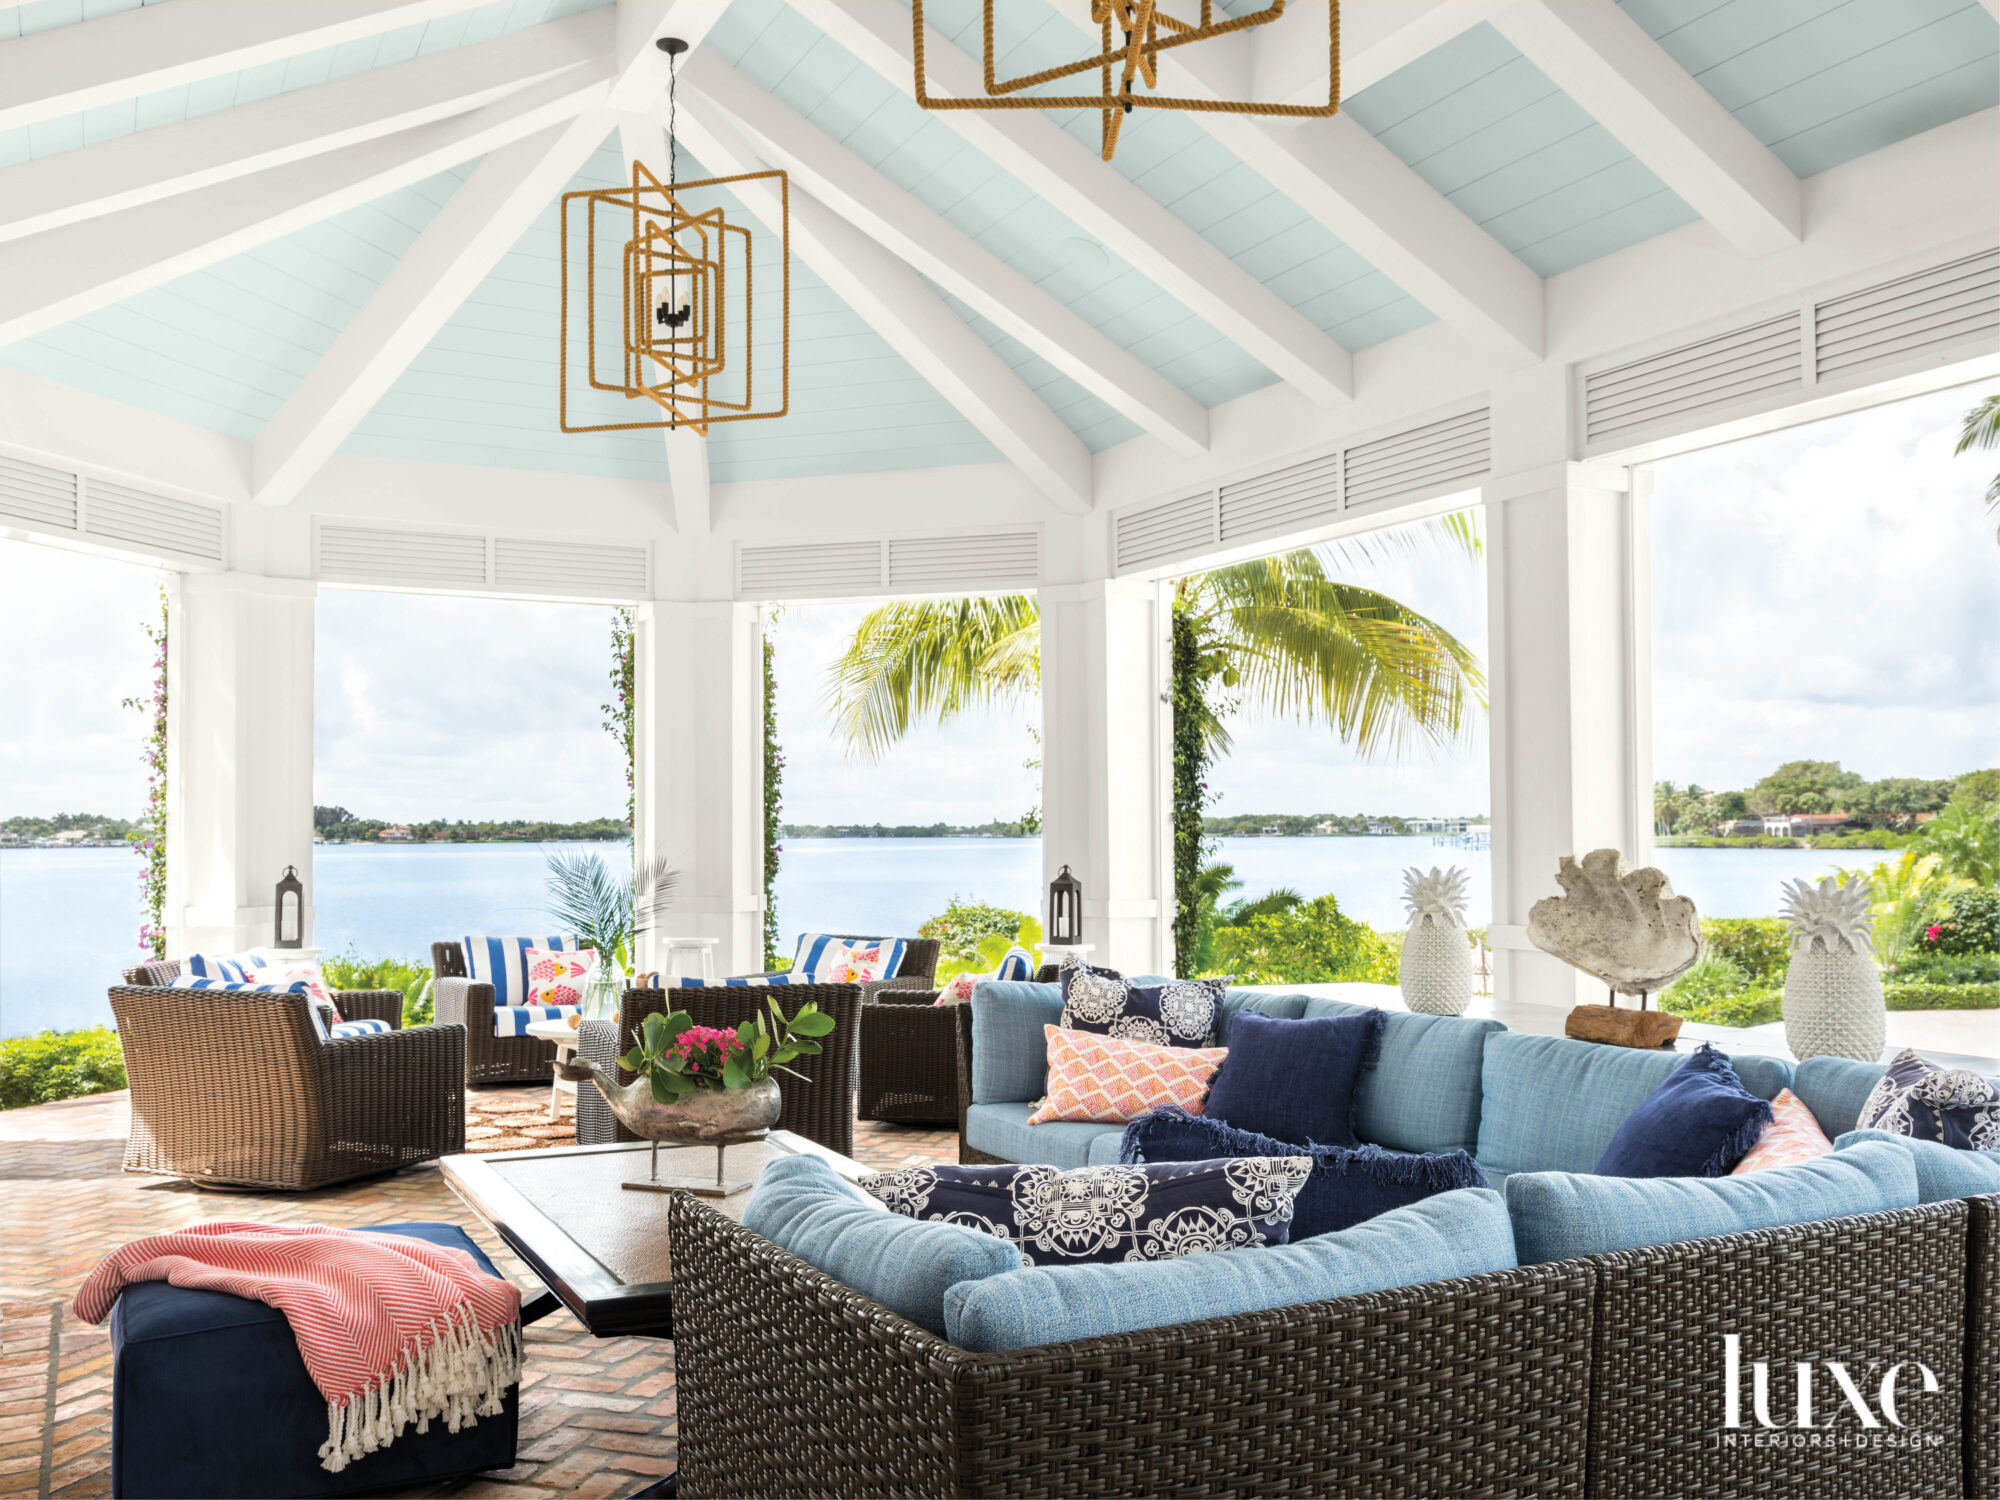 loggia overlooking waterway with light blue ceiling, rope lantern chandeliers and blue wicker furnishings